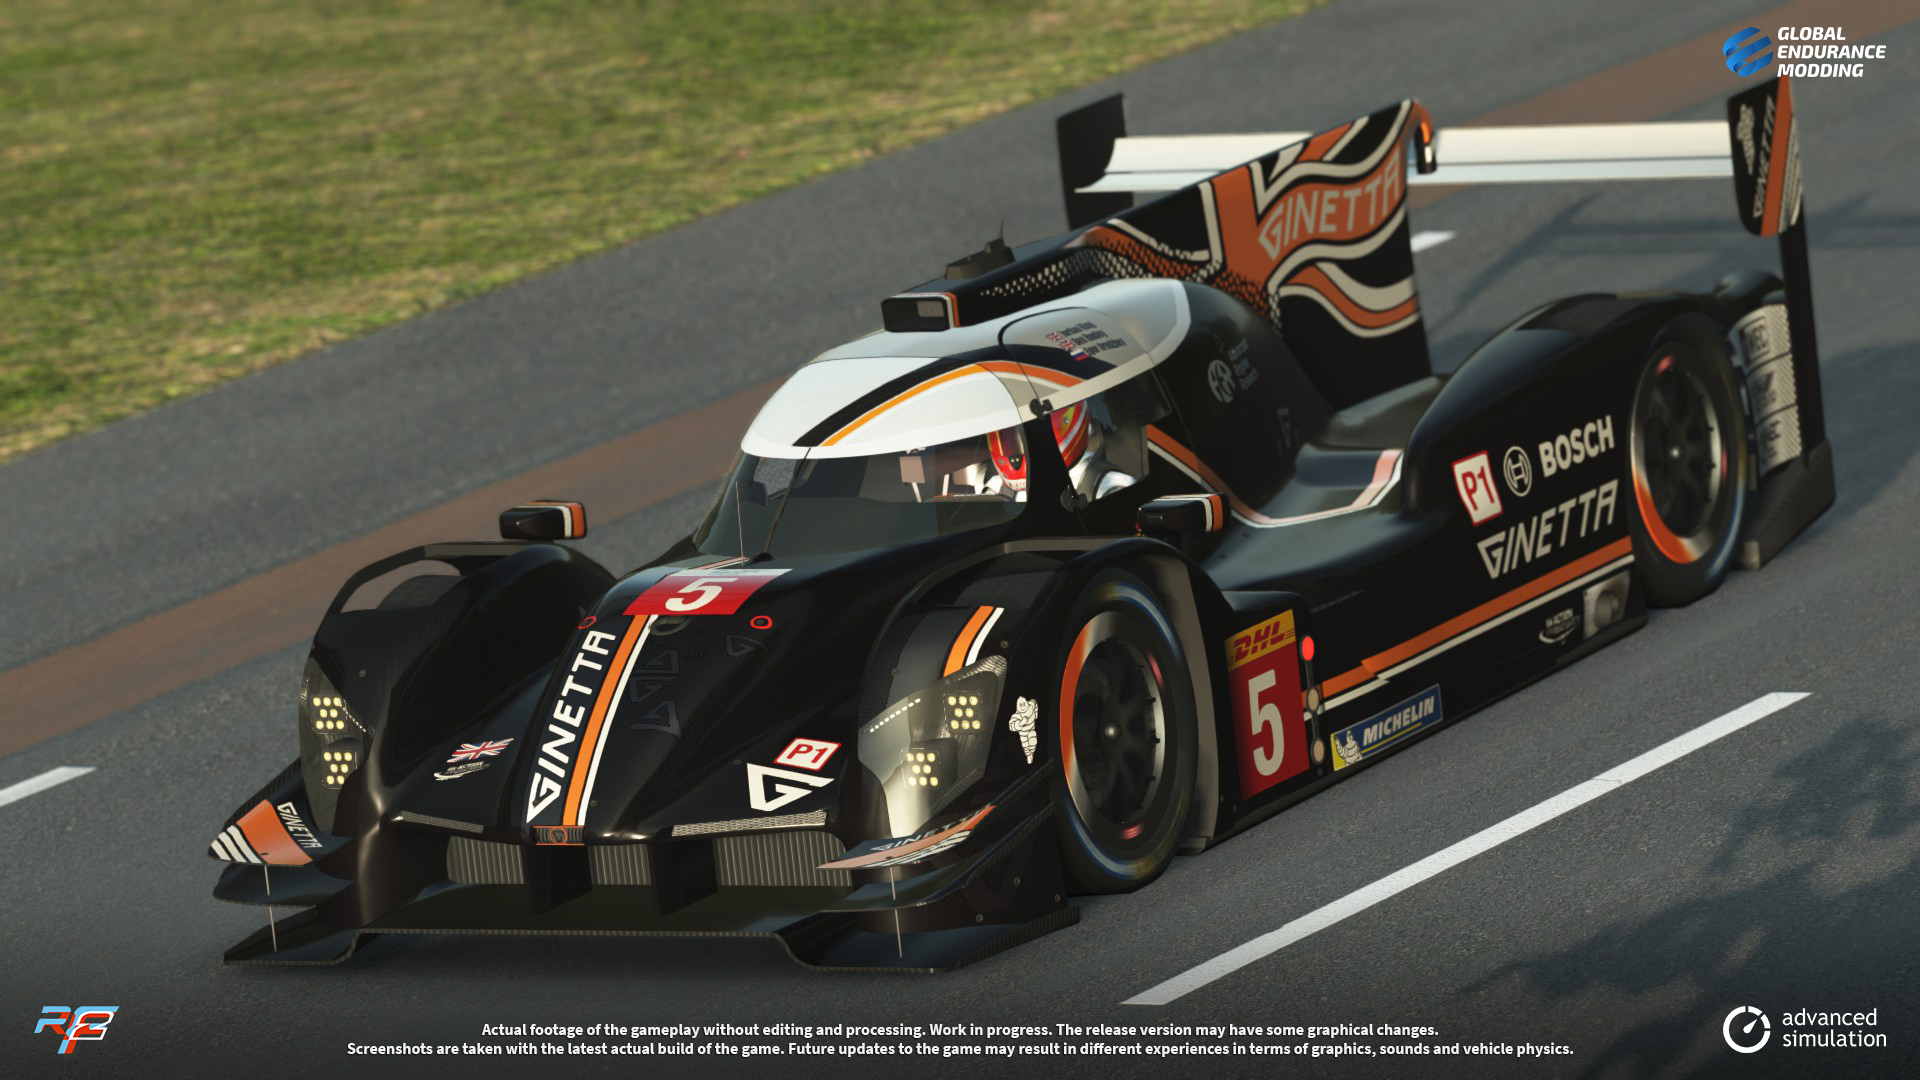 screen-011 Ginetta G60-LT-P1 LMP1 for rFactor 2 – More Previews